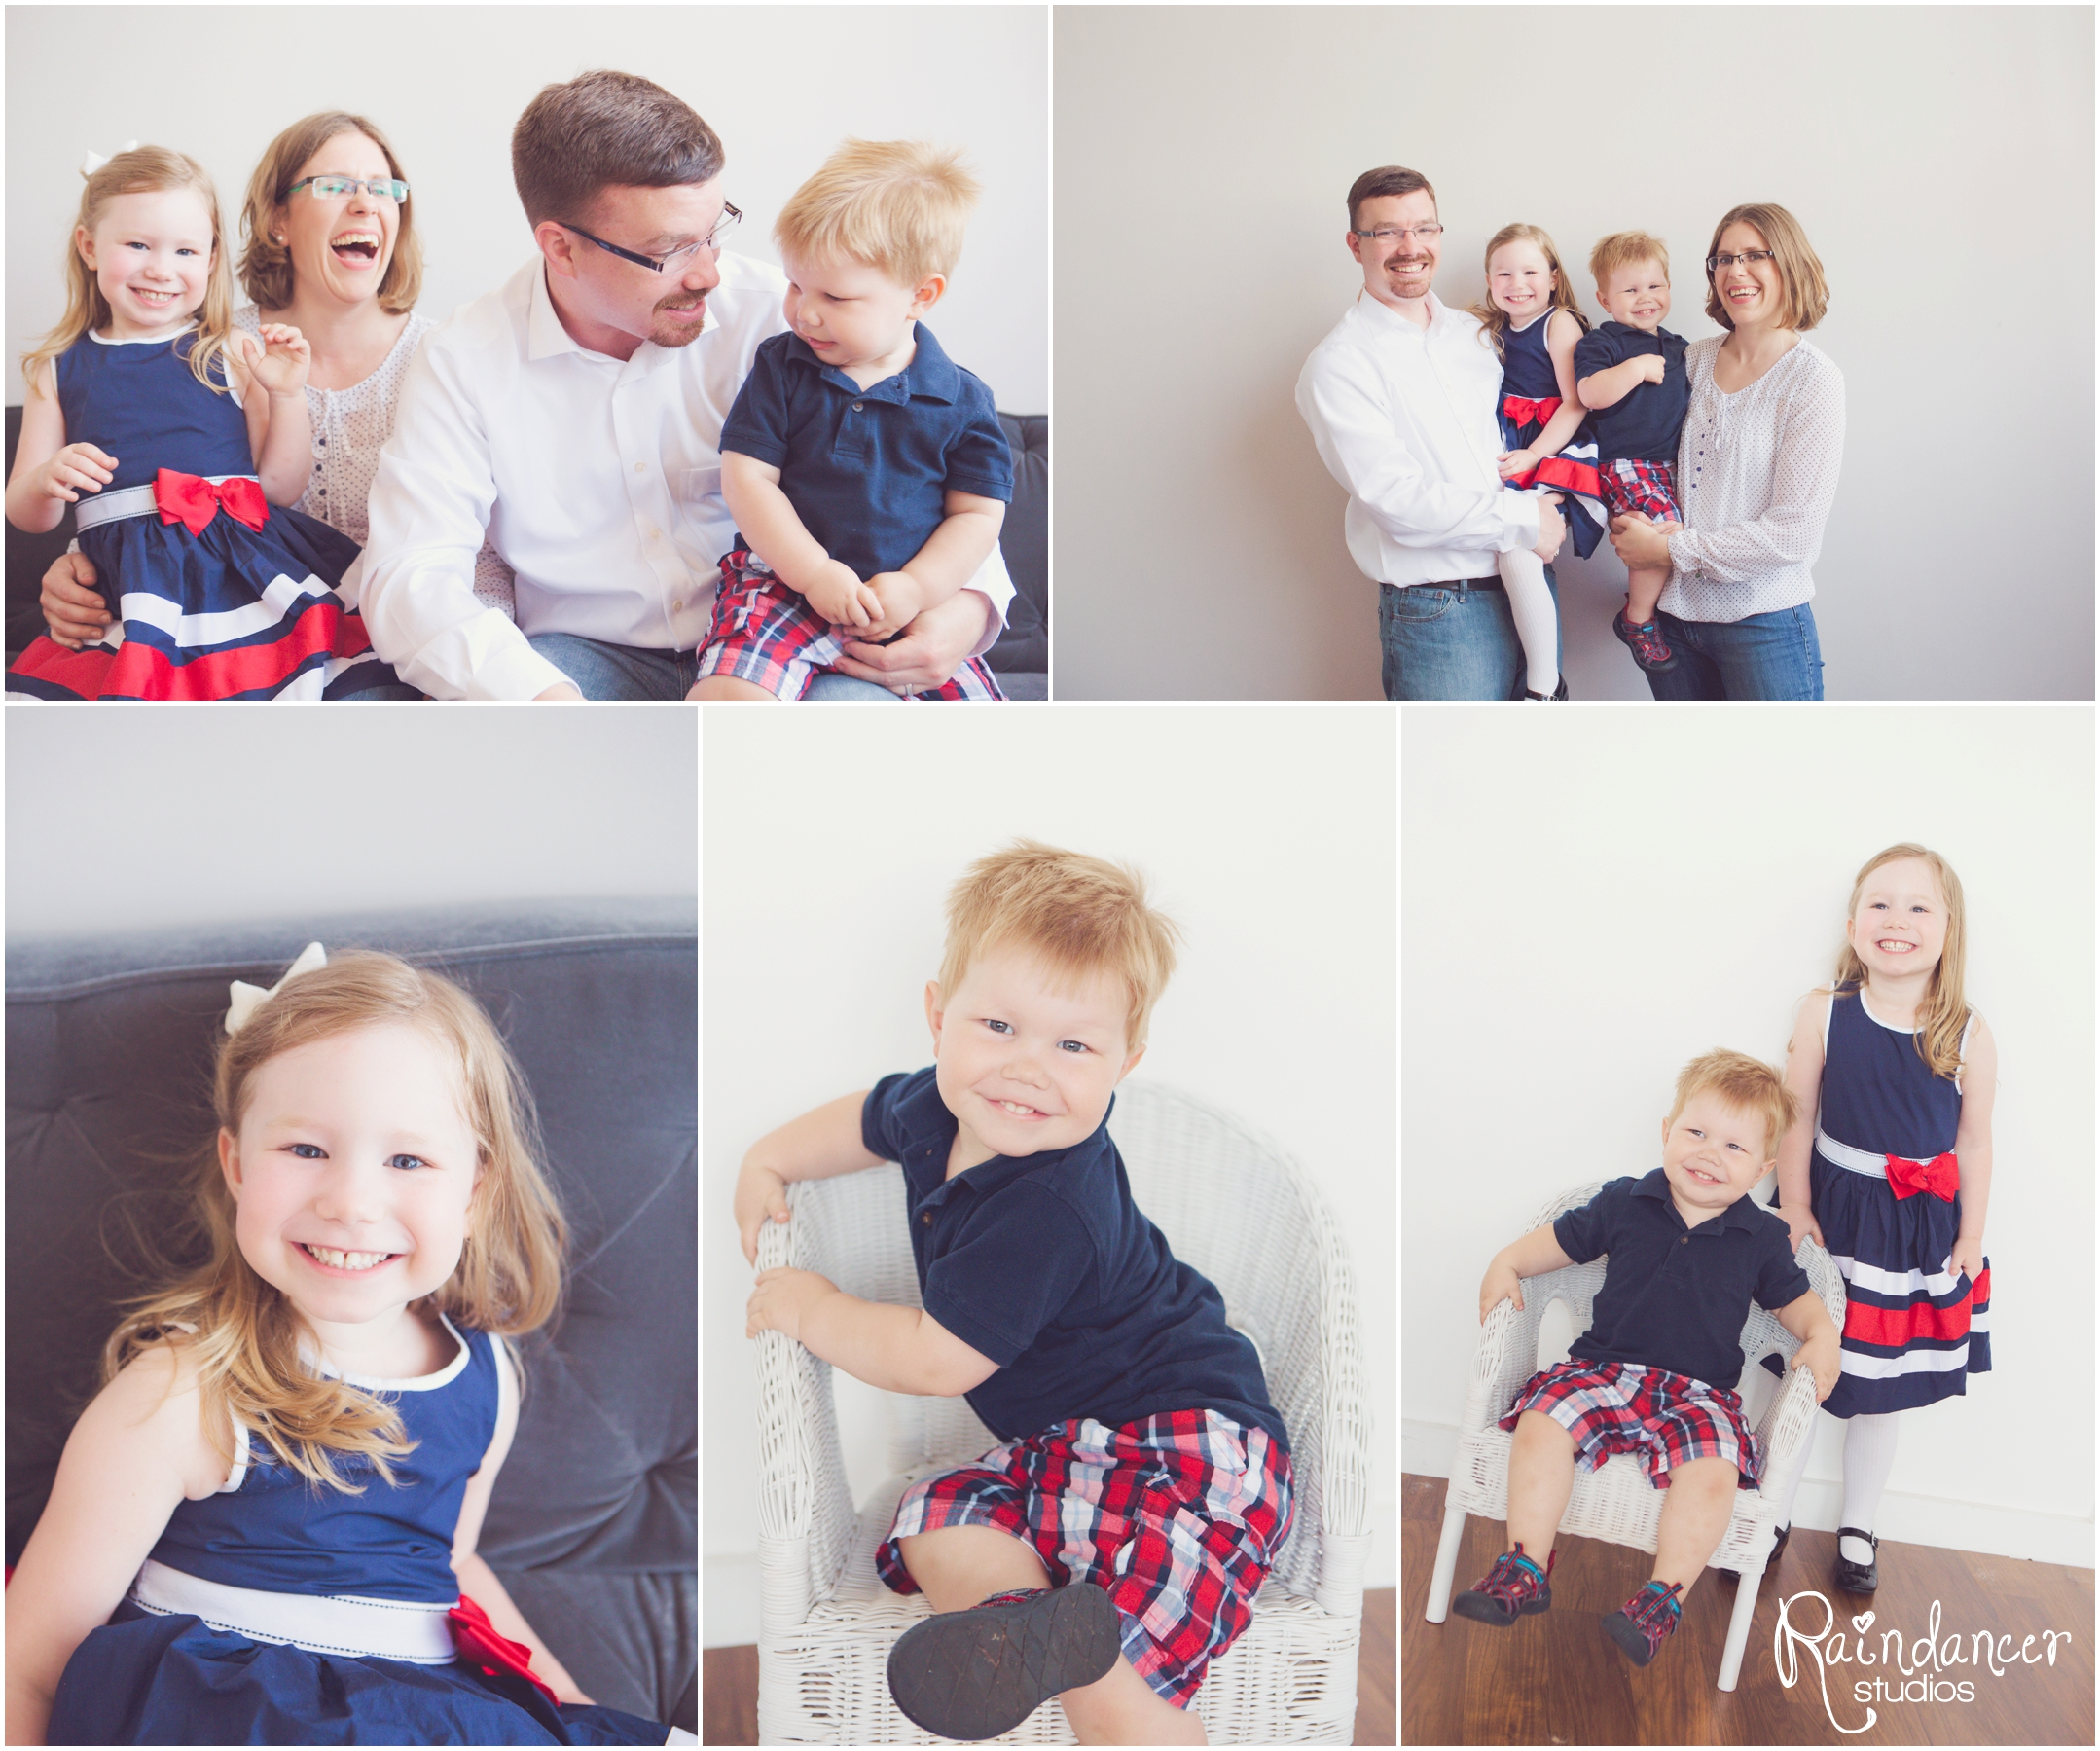 Indianapolis family photographer, Indianapolis family photography, Indy family photographer, Indy family photography, Indy children photographer, Indianapolis children photographer, Greenwood Family Photographer, Greenwood Children Photographer